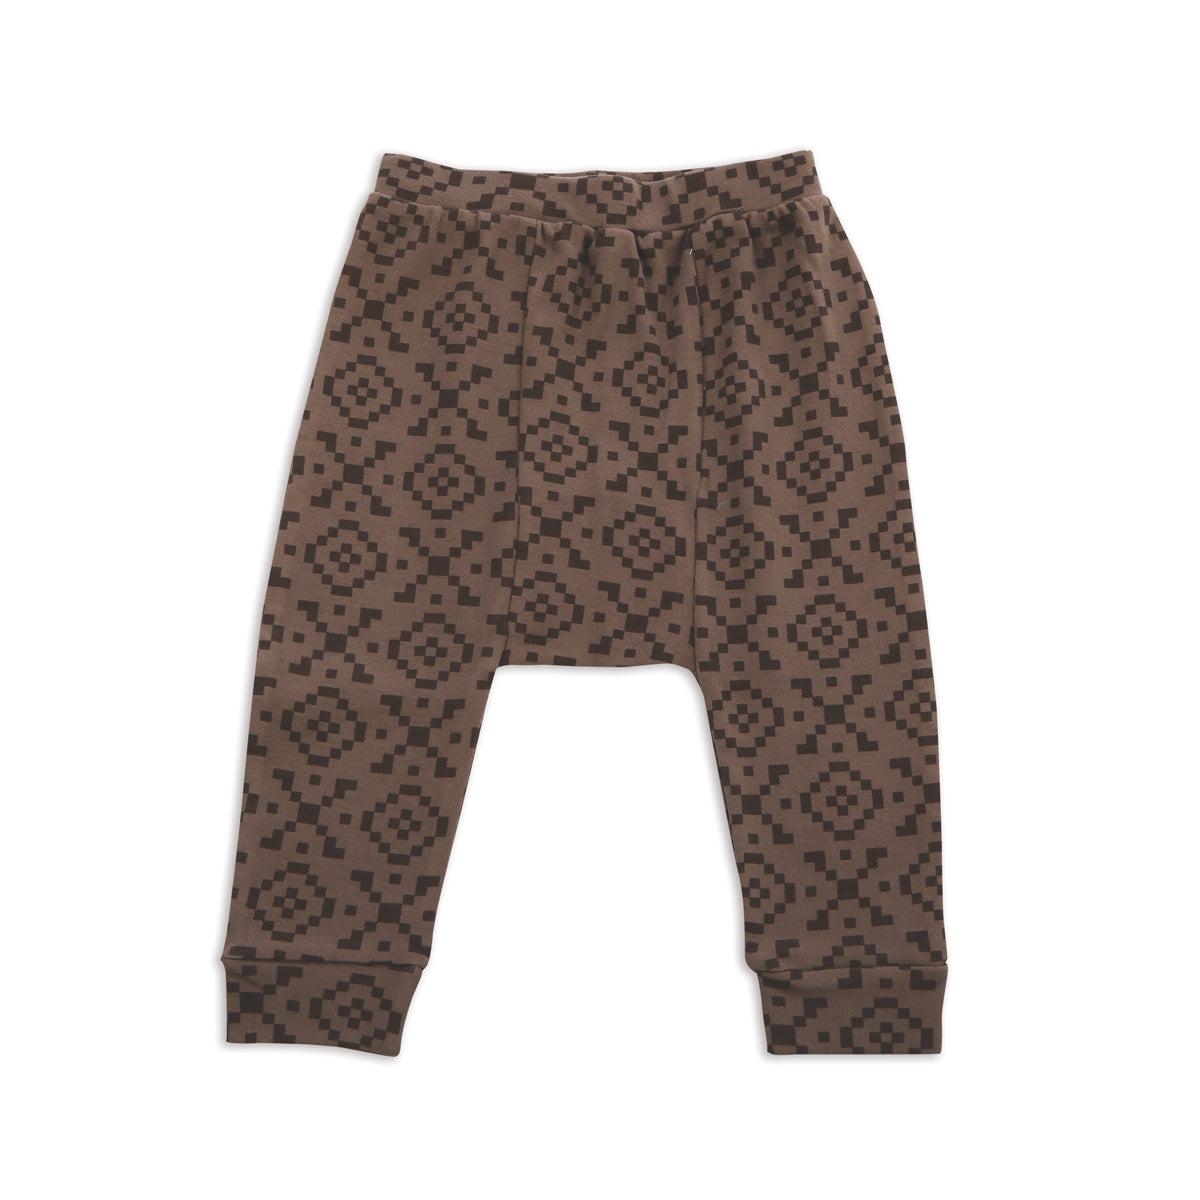 Organic Cotton Harem Pants (Hugs & Kisses Print)